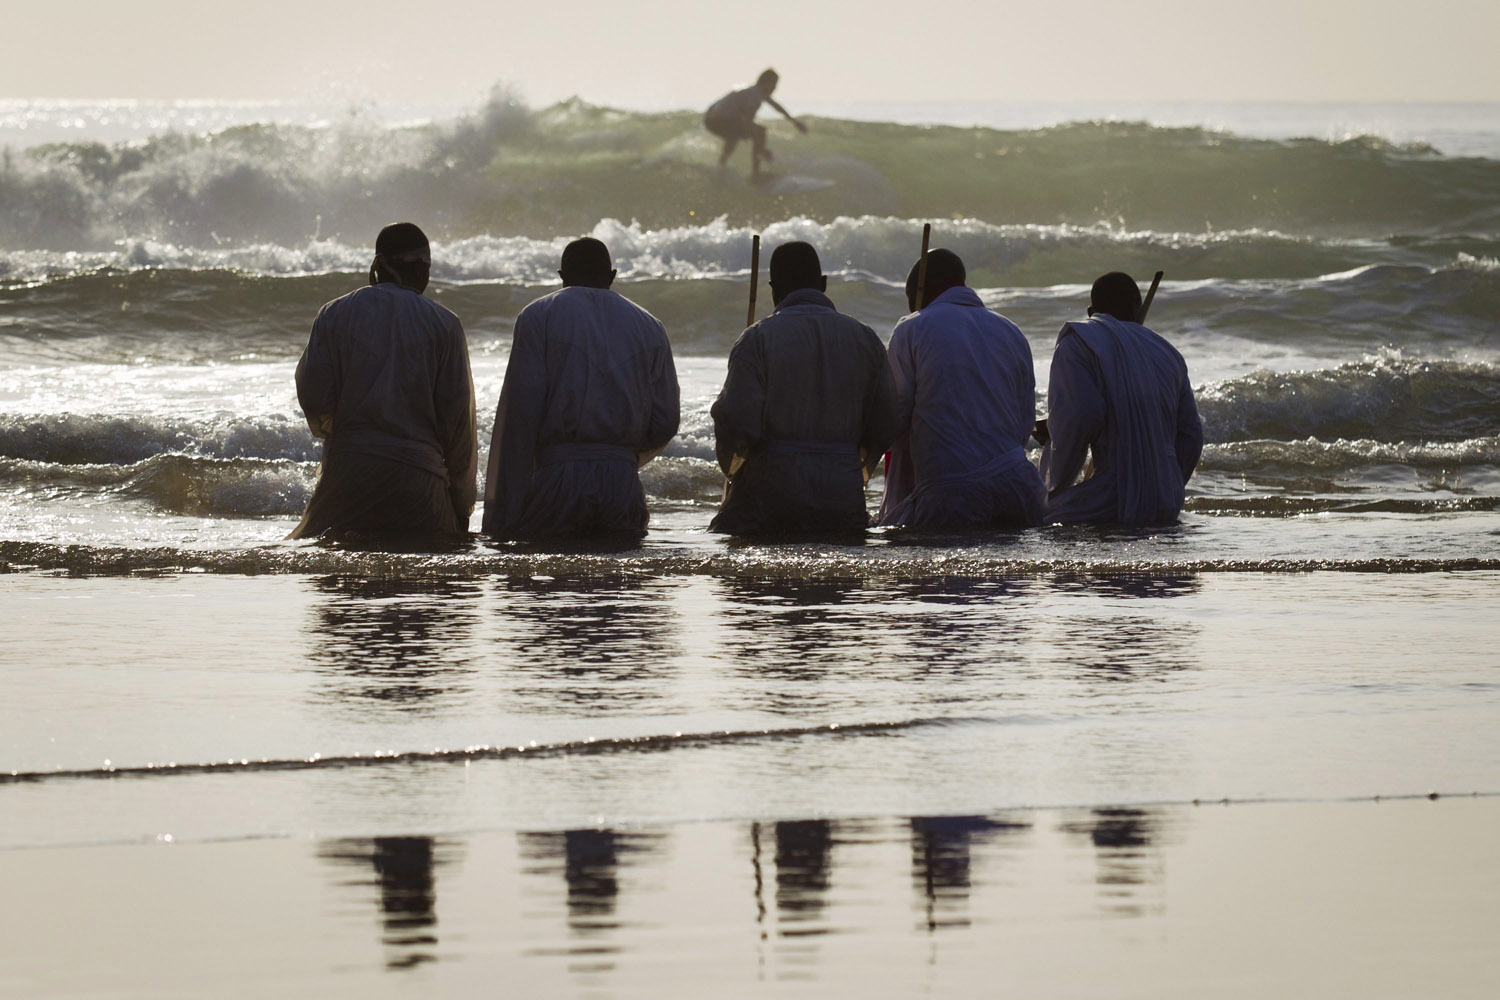 Oct. 5, 2013. Members of the Shembe Church pray while kneeling in water on the Durban beach front in South Africa.